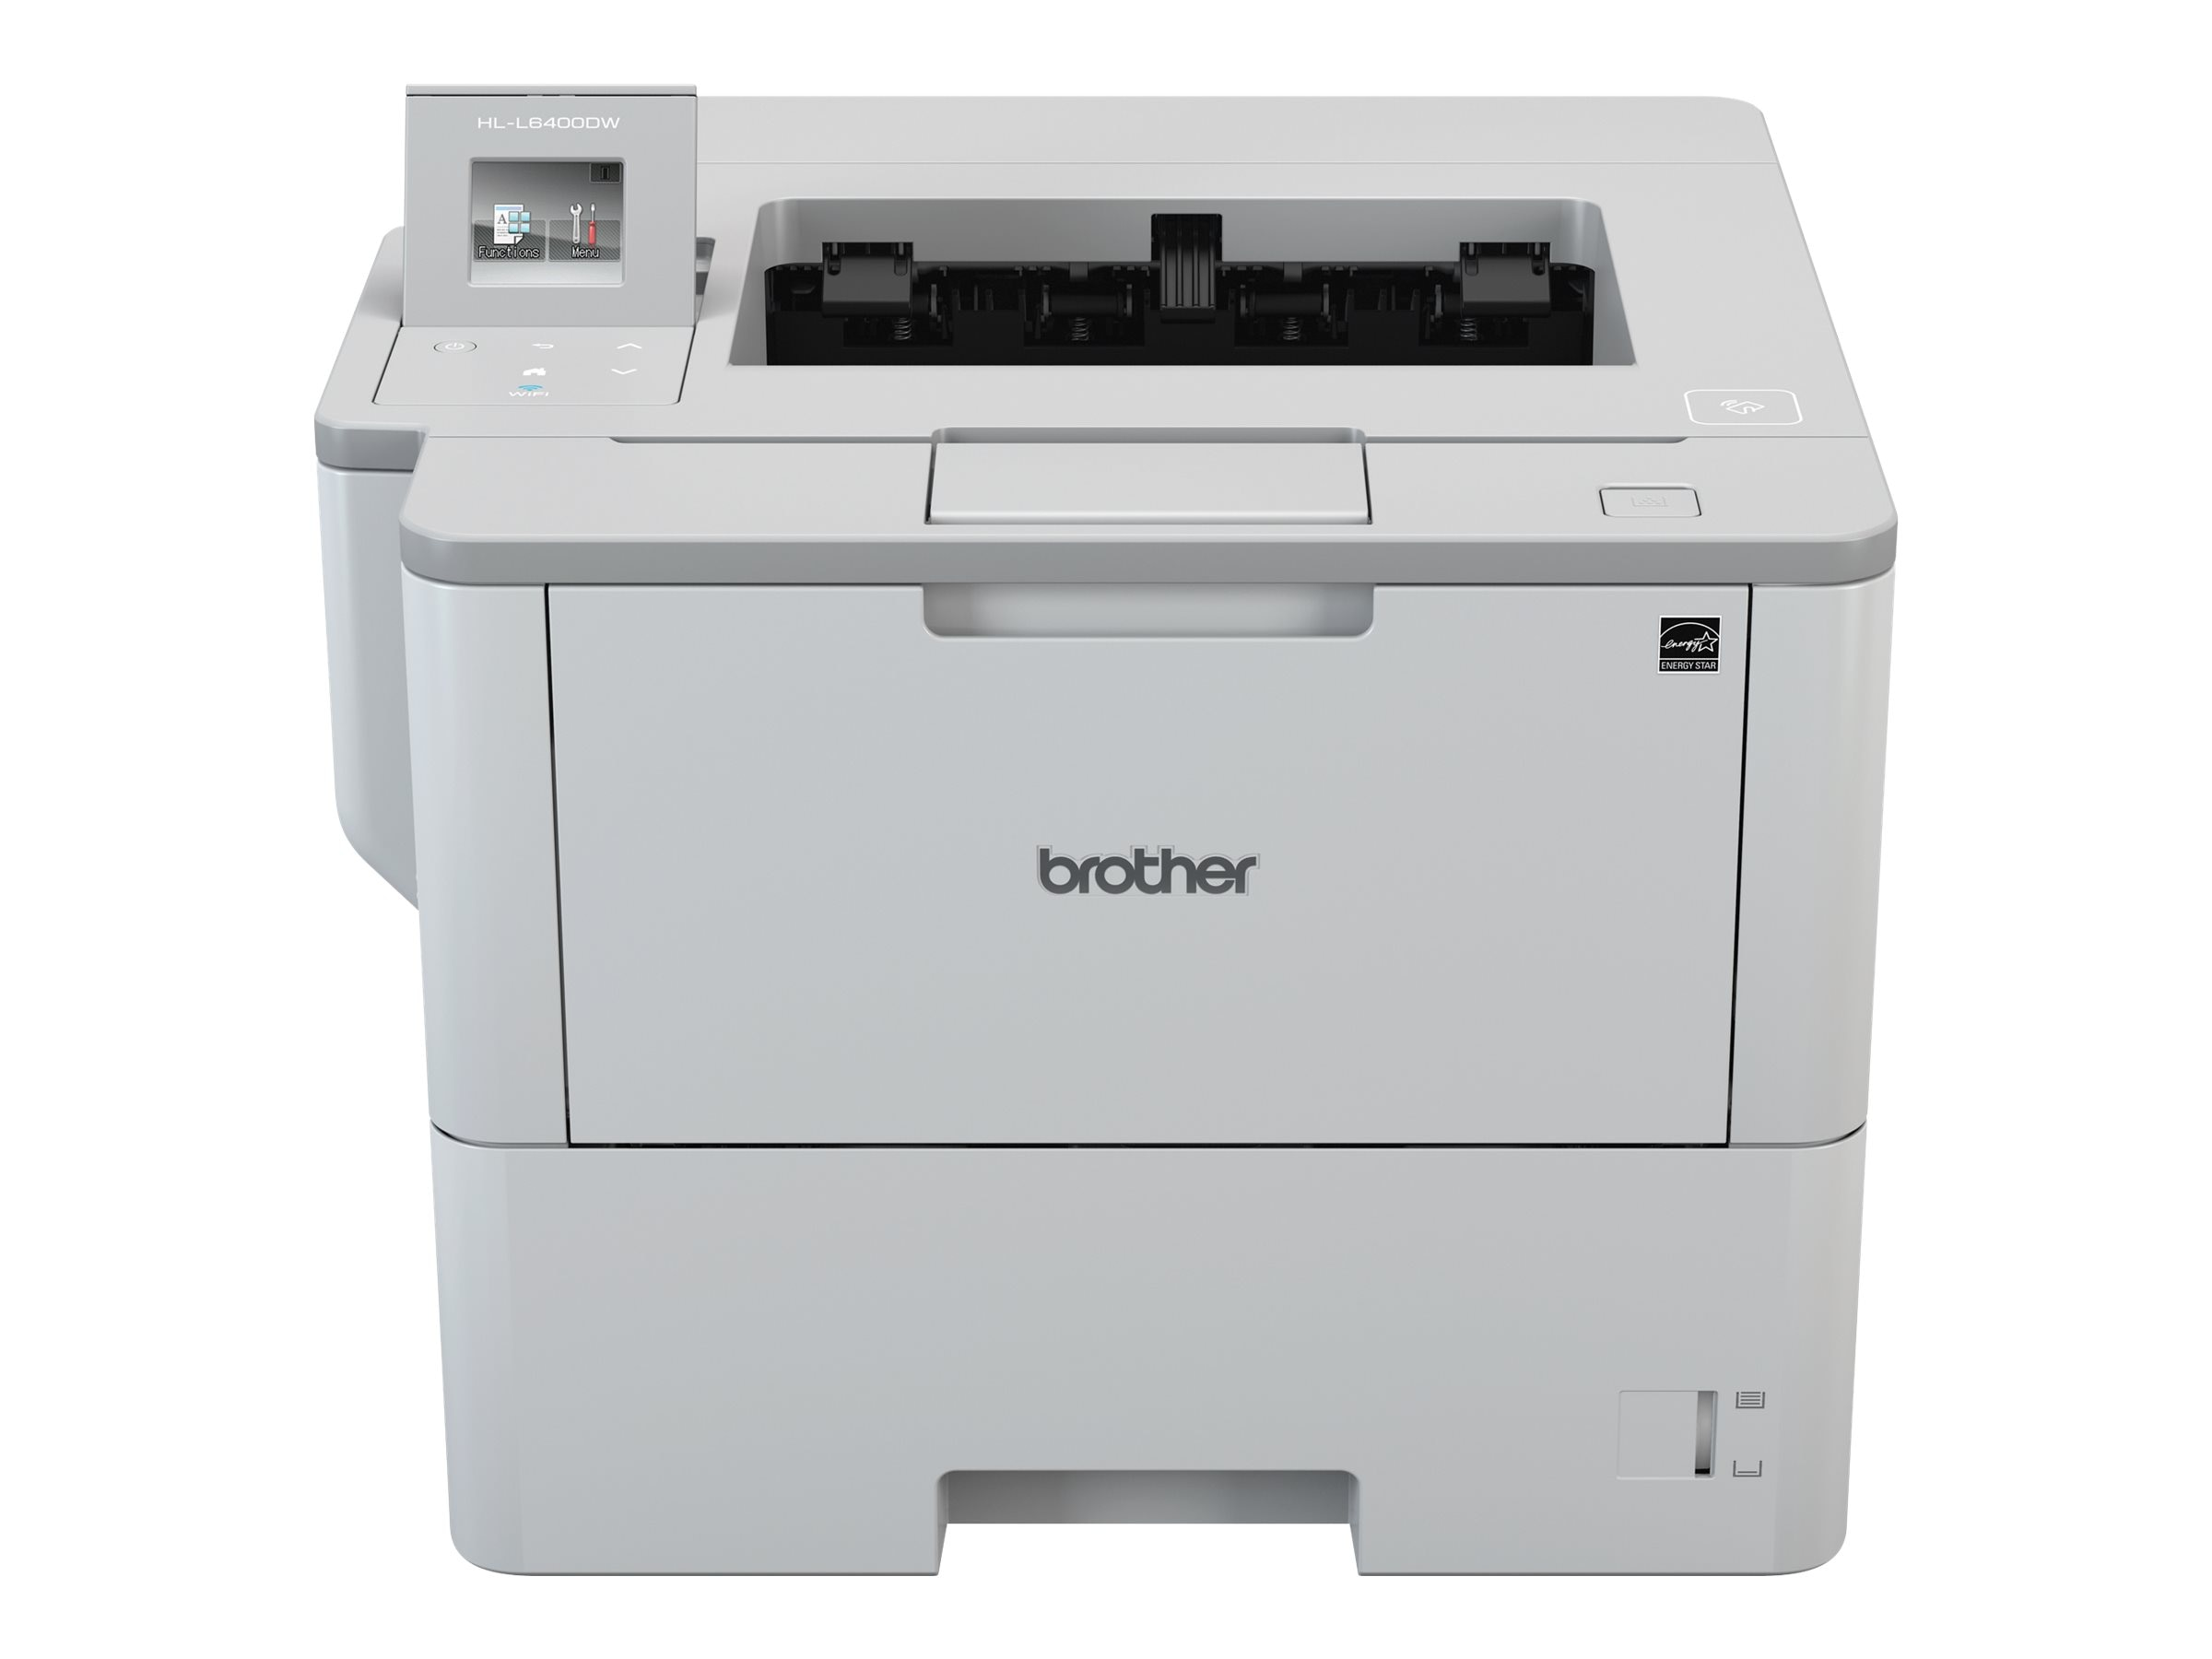 Brother HL-L6400DW Image 2